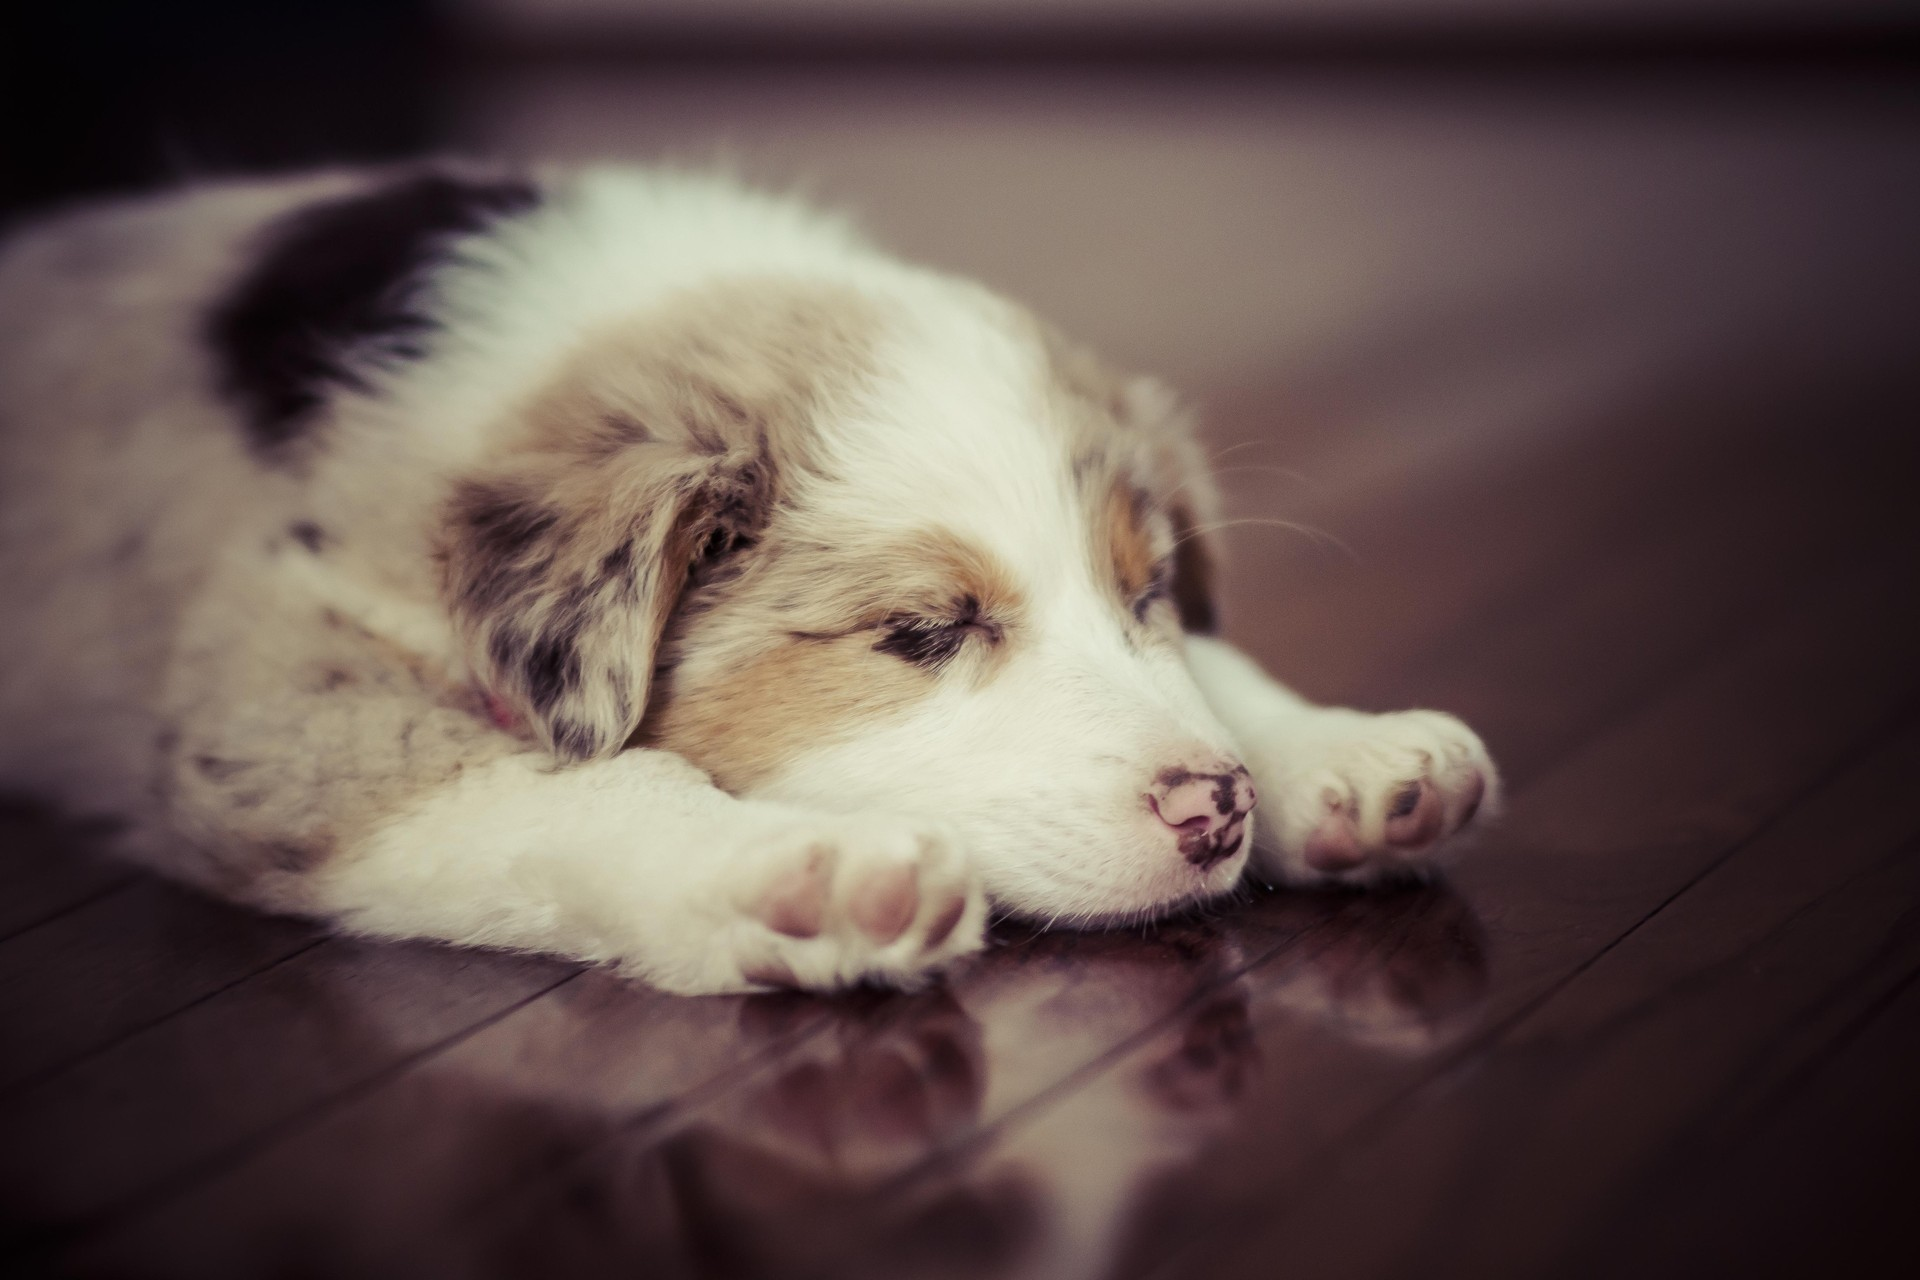 137786 download wallpaper Animals, Puppy, Dog, Sleep, Dream, Spotted, Spotty screensavers and pictures for free